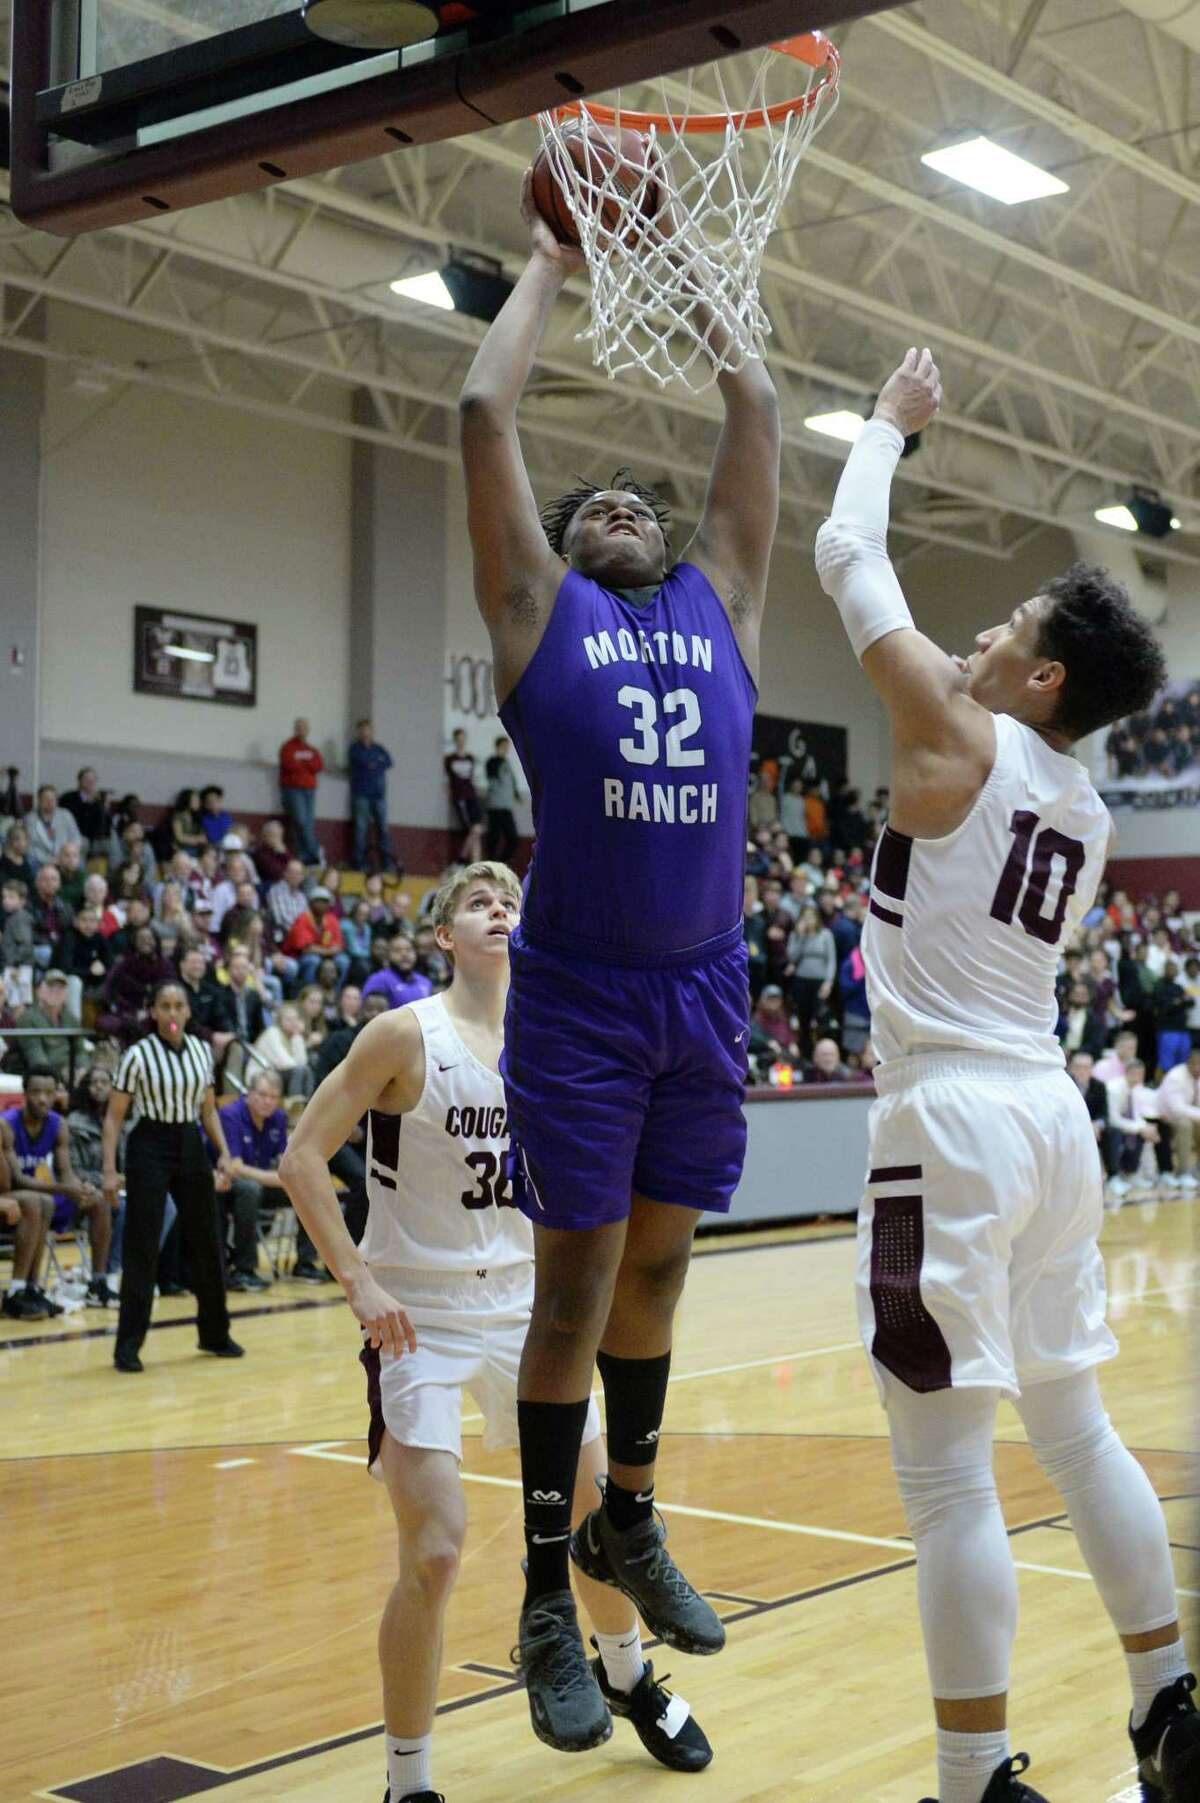 Eddie Lampkin (32) of Morton Ranch attempts a slam-dunk during the second half of a high school basketball game between the Cinco Ranch Cougars and the Morton Ranch Mavericks on Tuesday January 29, 2019 at Cinco Ranch HS, Katy, TX.